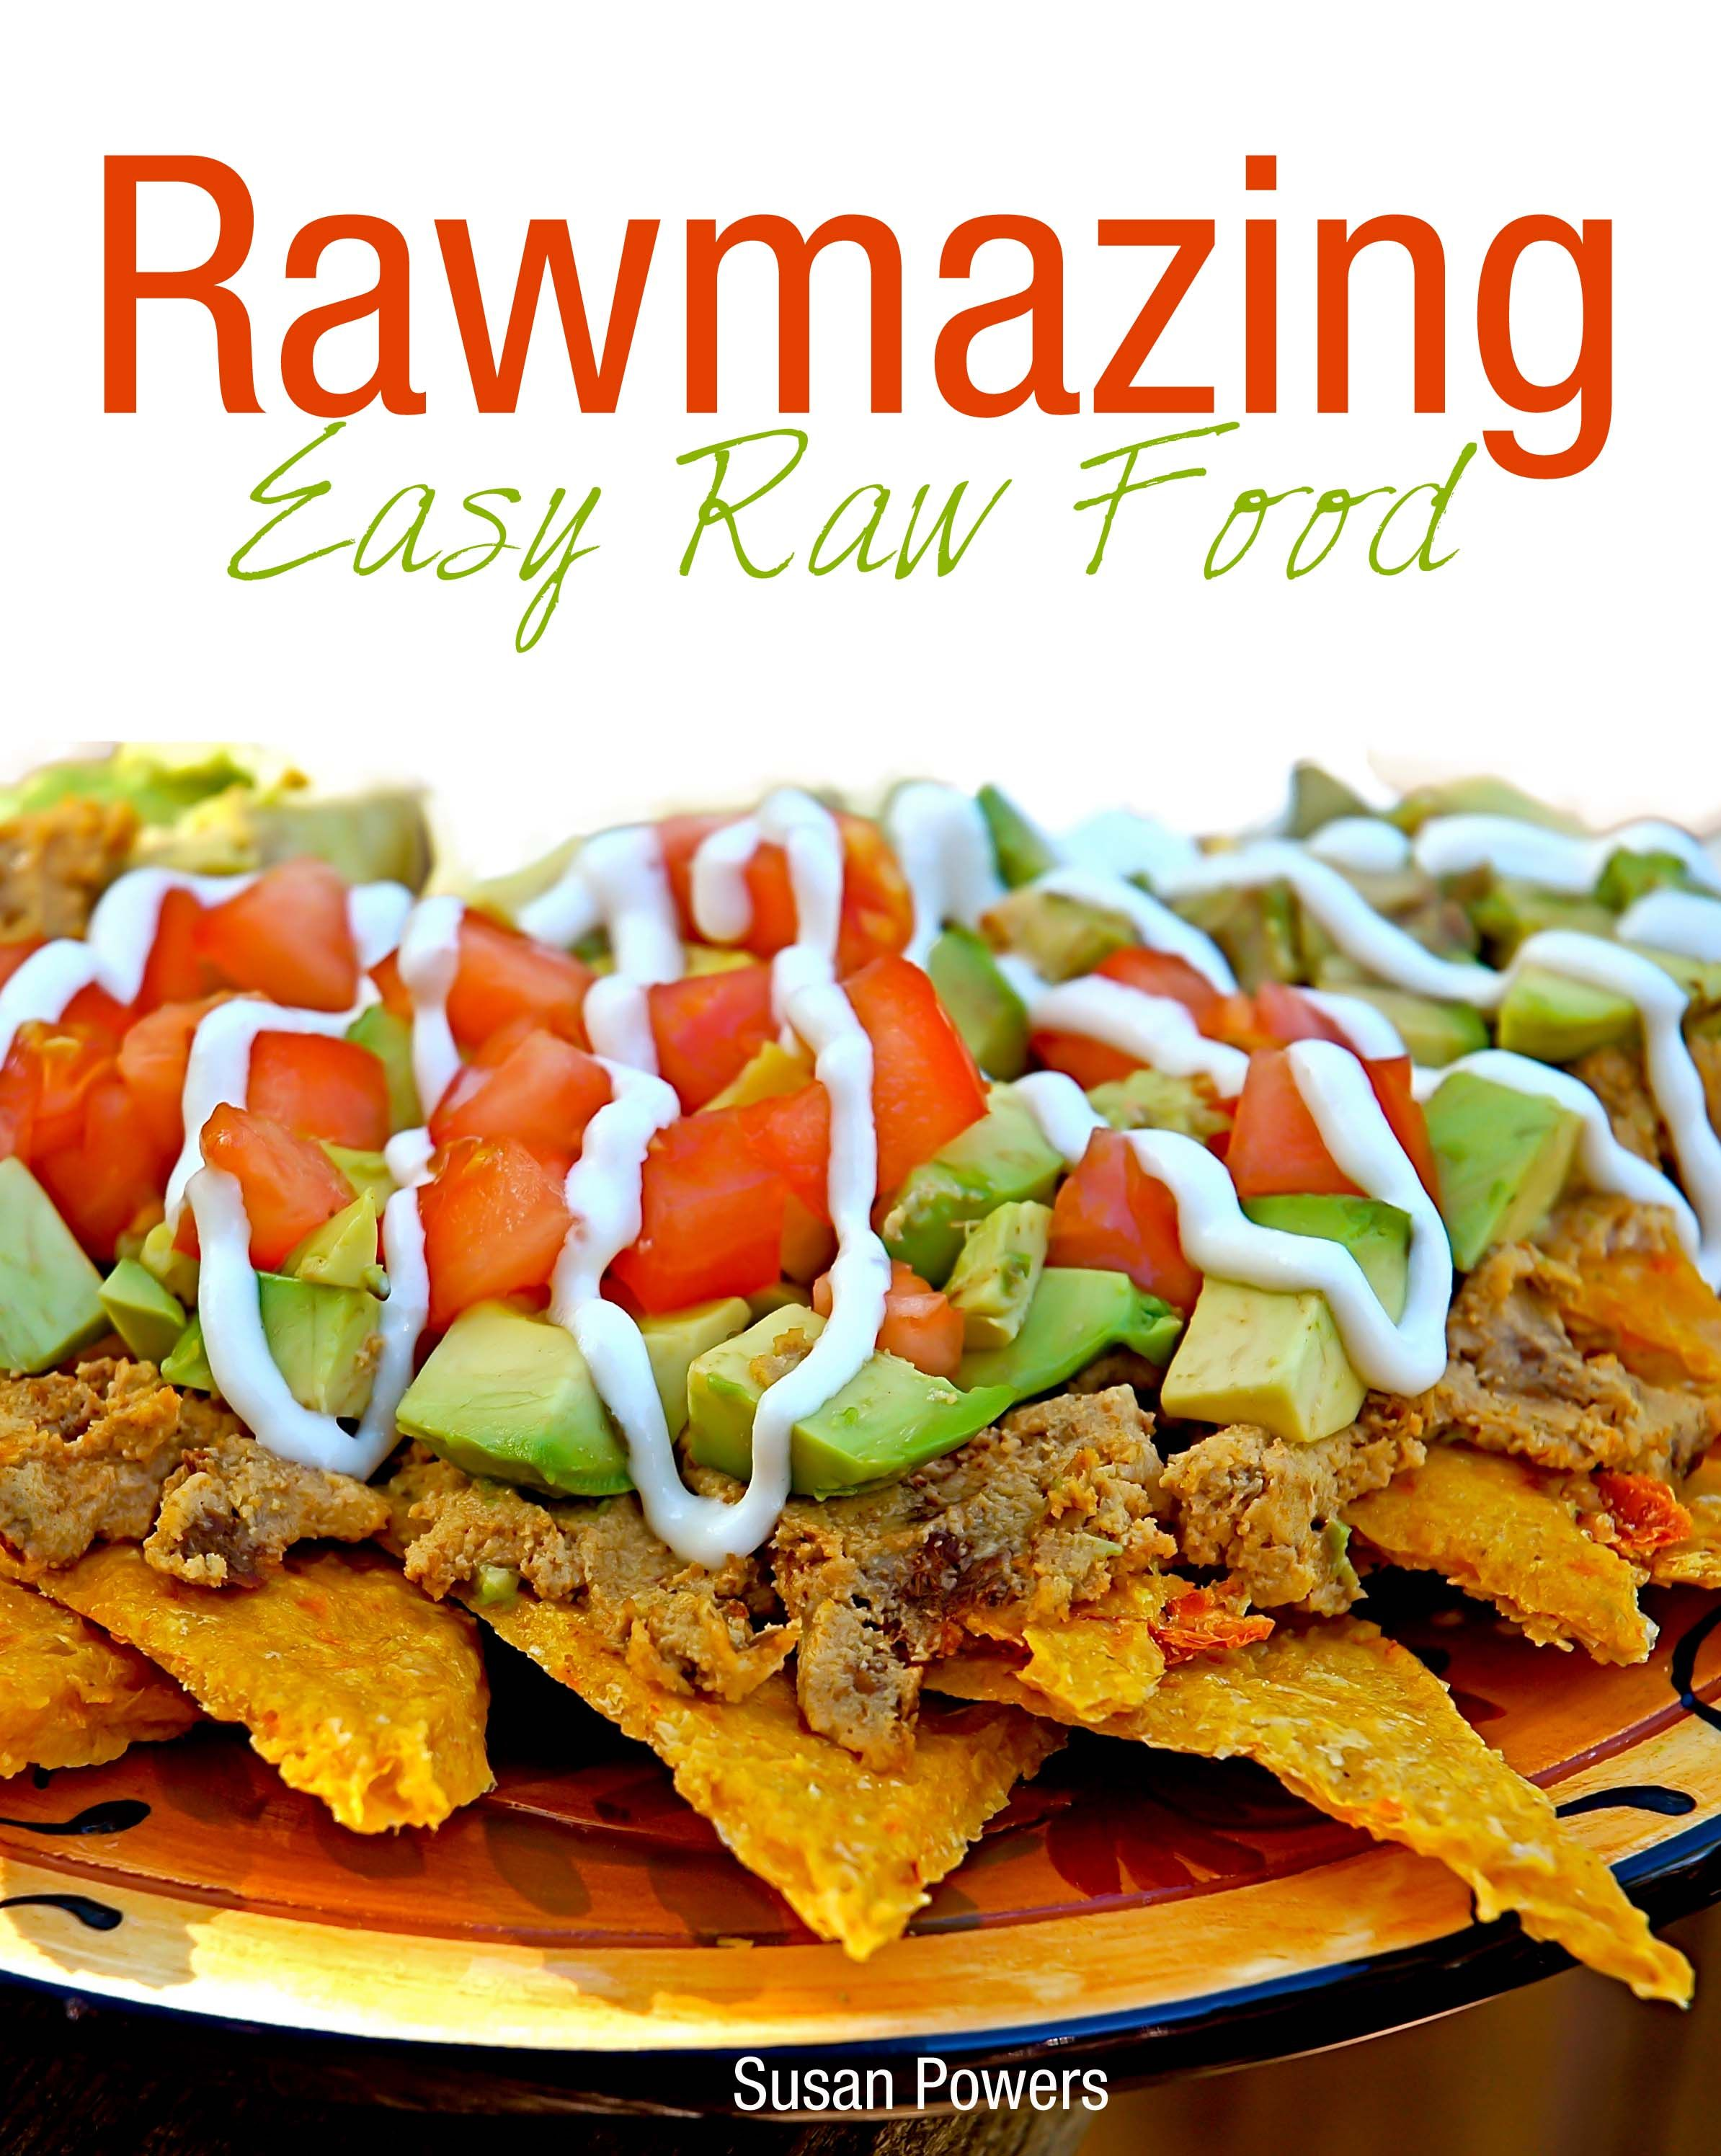 www.Rawmazing.com = a good resource for raw food recipes, beautiful photos, gourmet spirit, and options for eating raw without sacrificing pleasure. @Susan Powers, the passionista behind the website, shares her creativity and vision in a lovely and accessible way. #rawfood #eatingraw #rawrecipes